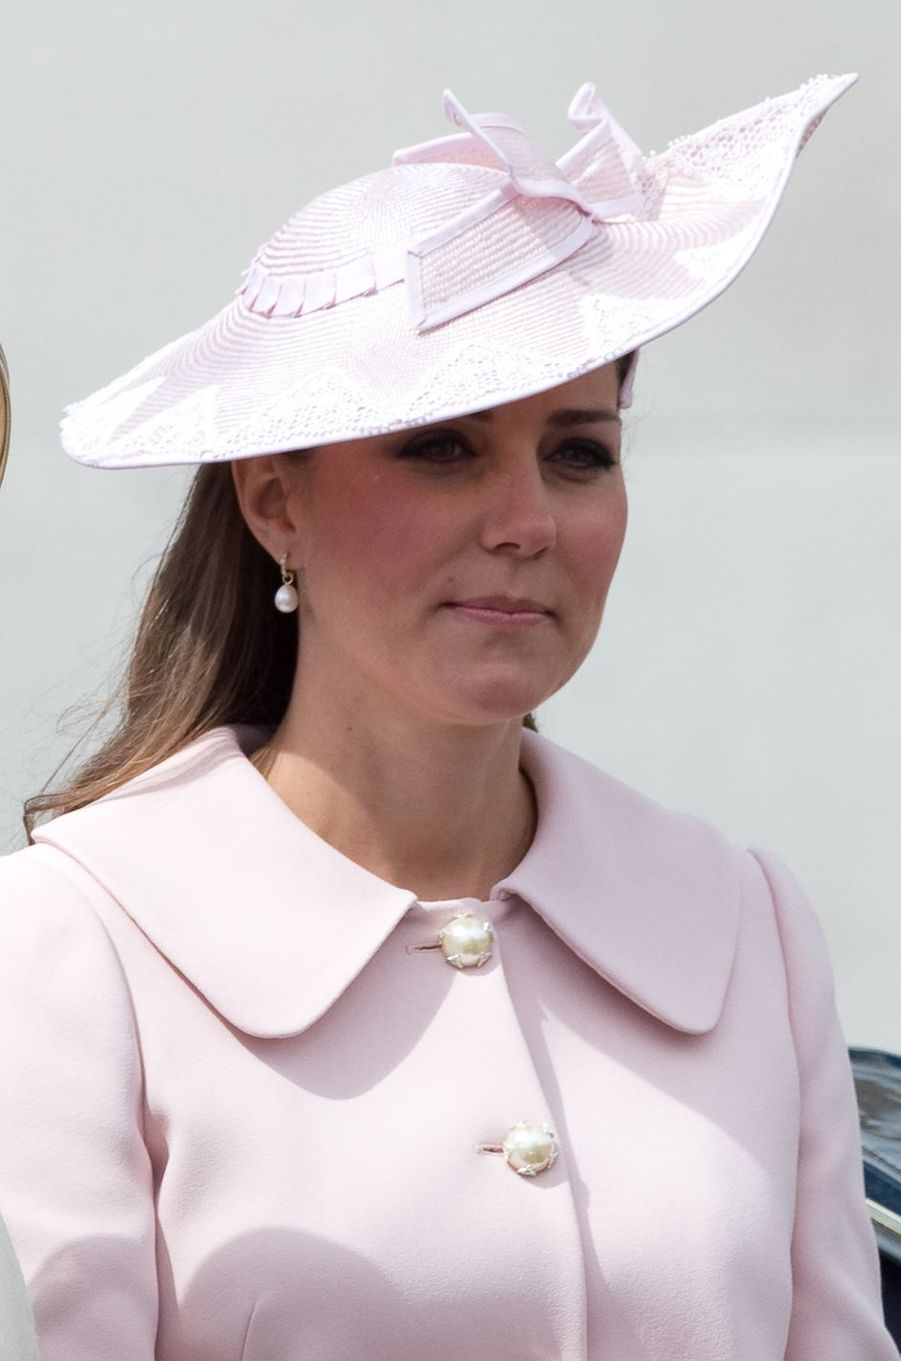 La duchesse Catherine de Cambridge à la cérémonie Trooping the Colour à Londres le 15 juin 2013